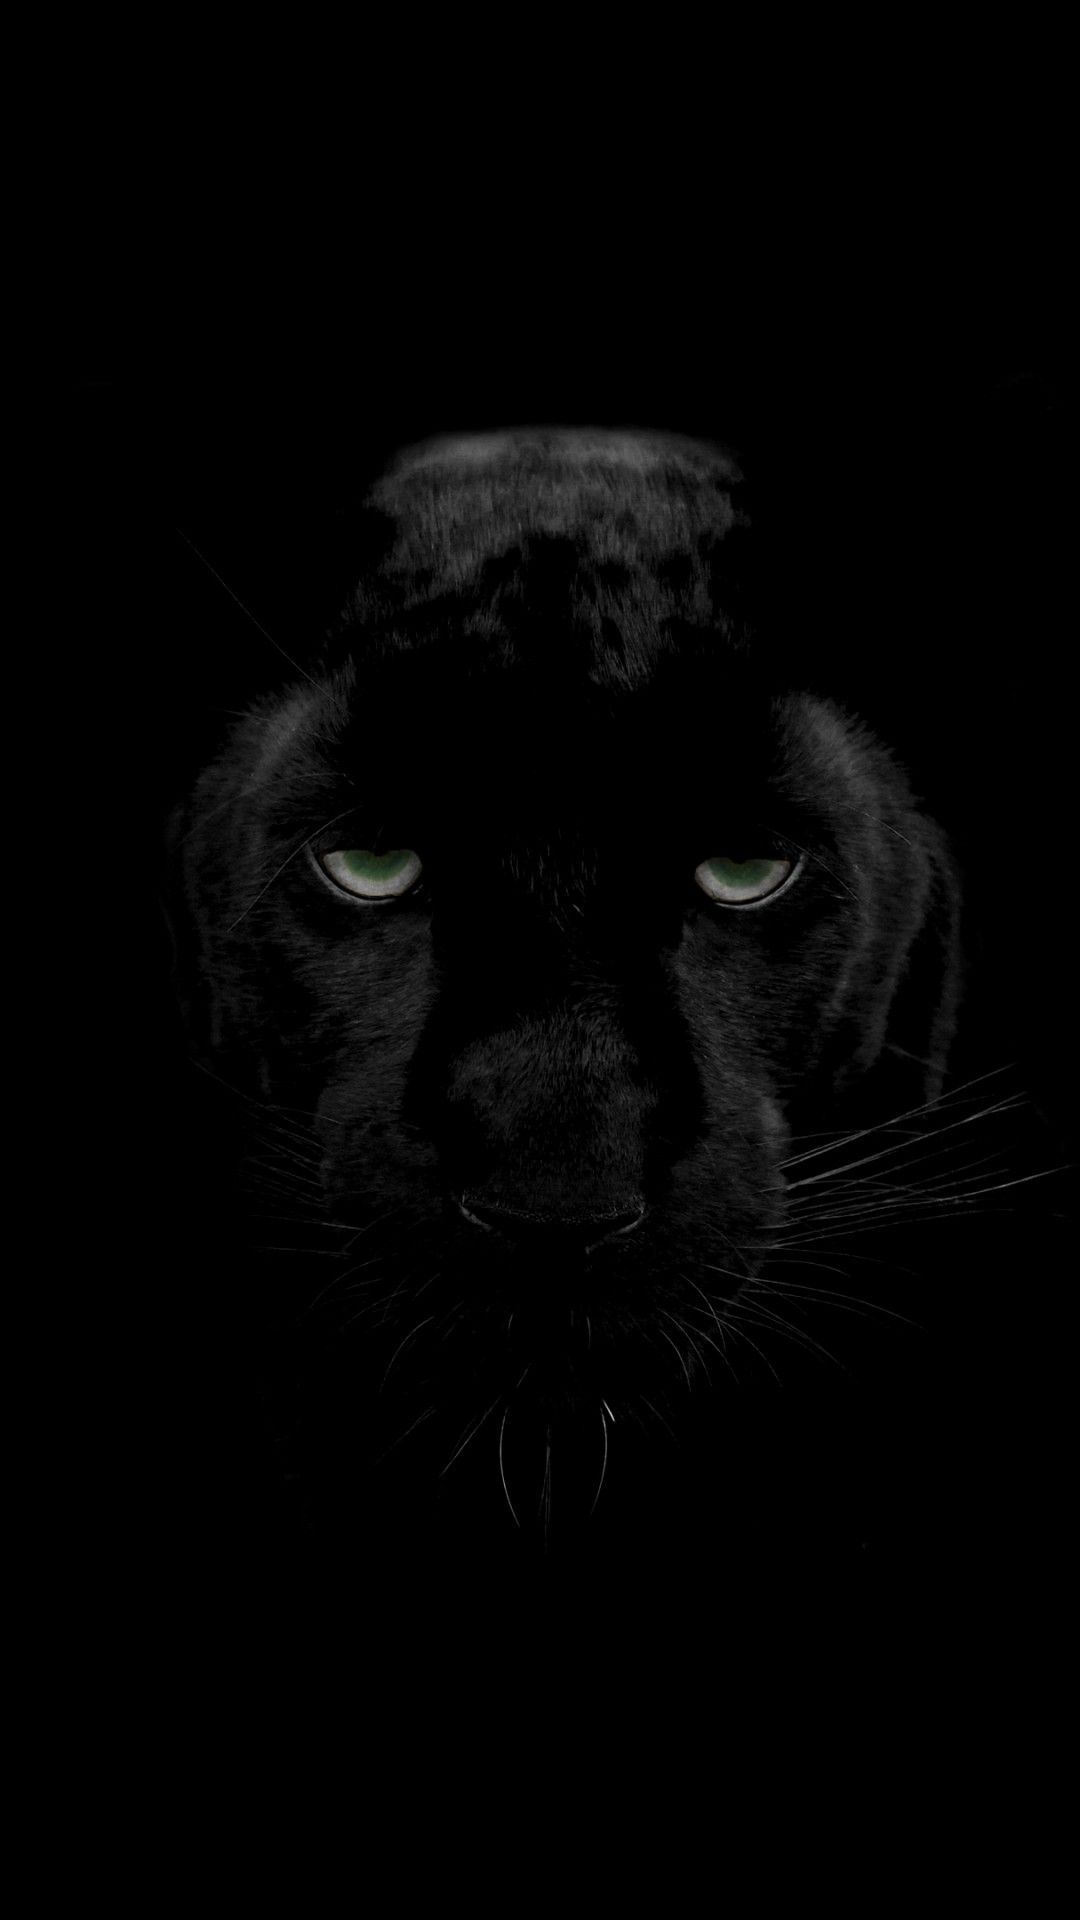 Black Panther Wallpaper 4k Iphone 3d Wallpapers Animal Wallpaper Black Panther Black Wallpaper